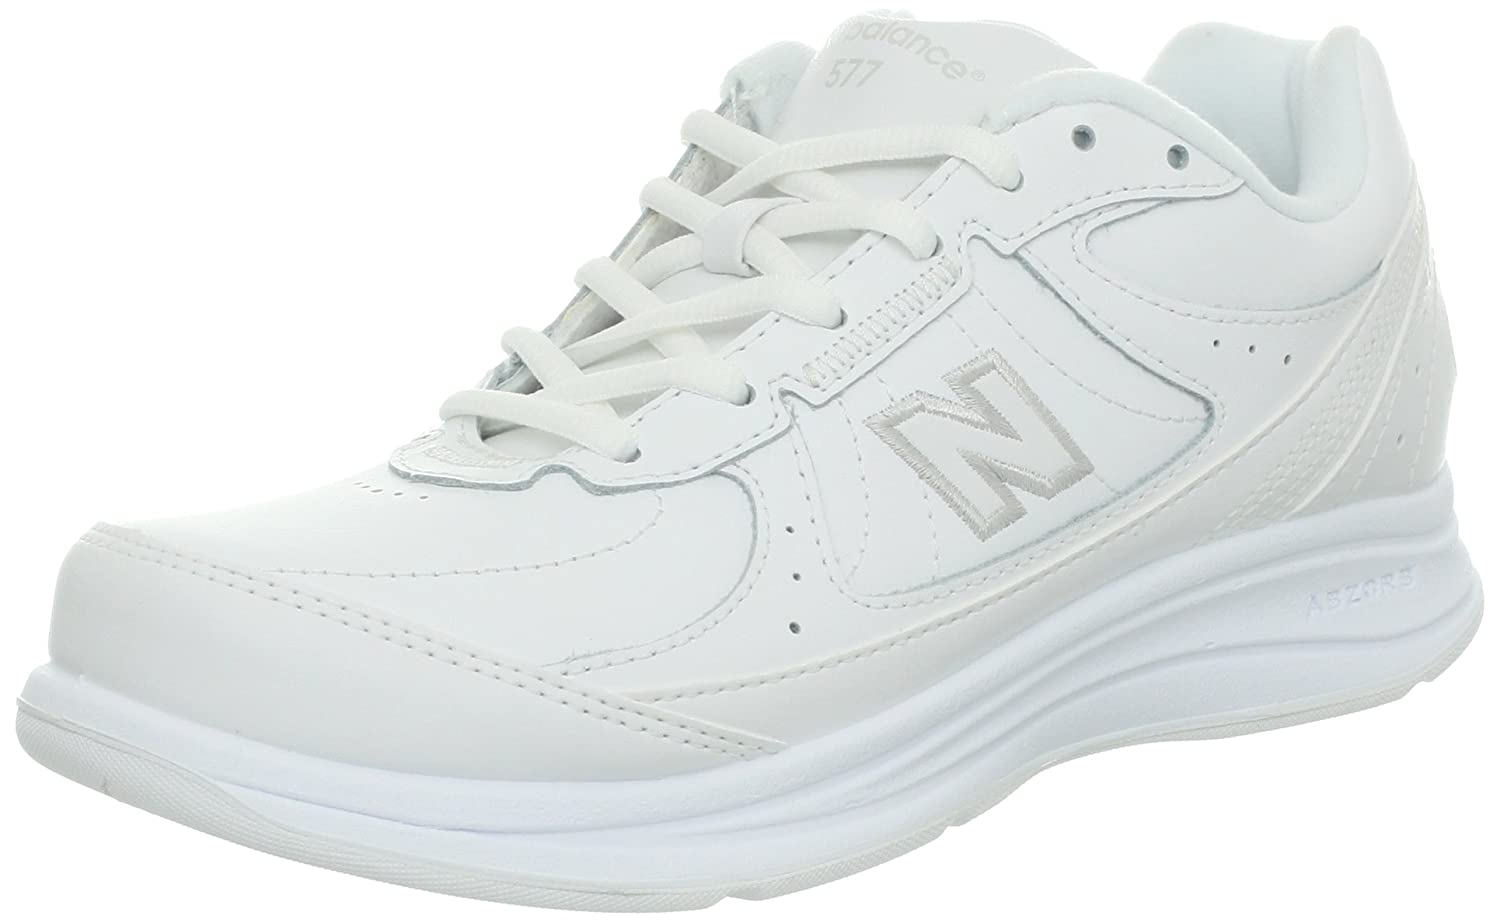 New Balance Women's WW577 Walking Shoe B003UHUKXM 6.5 2A US|White